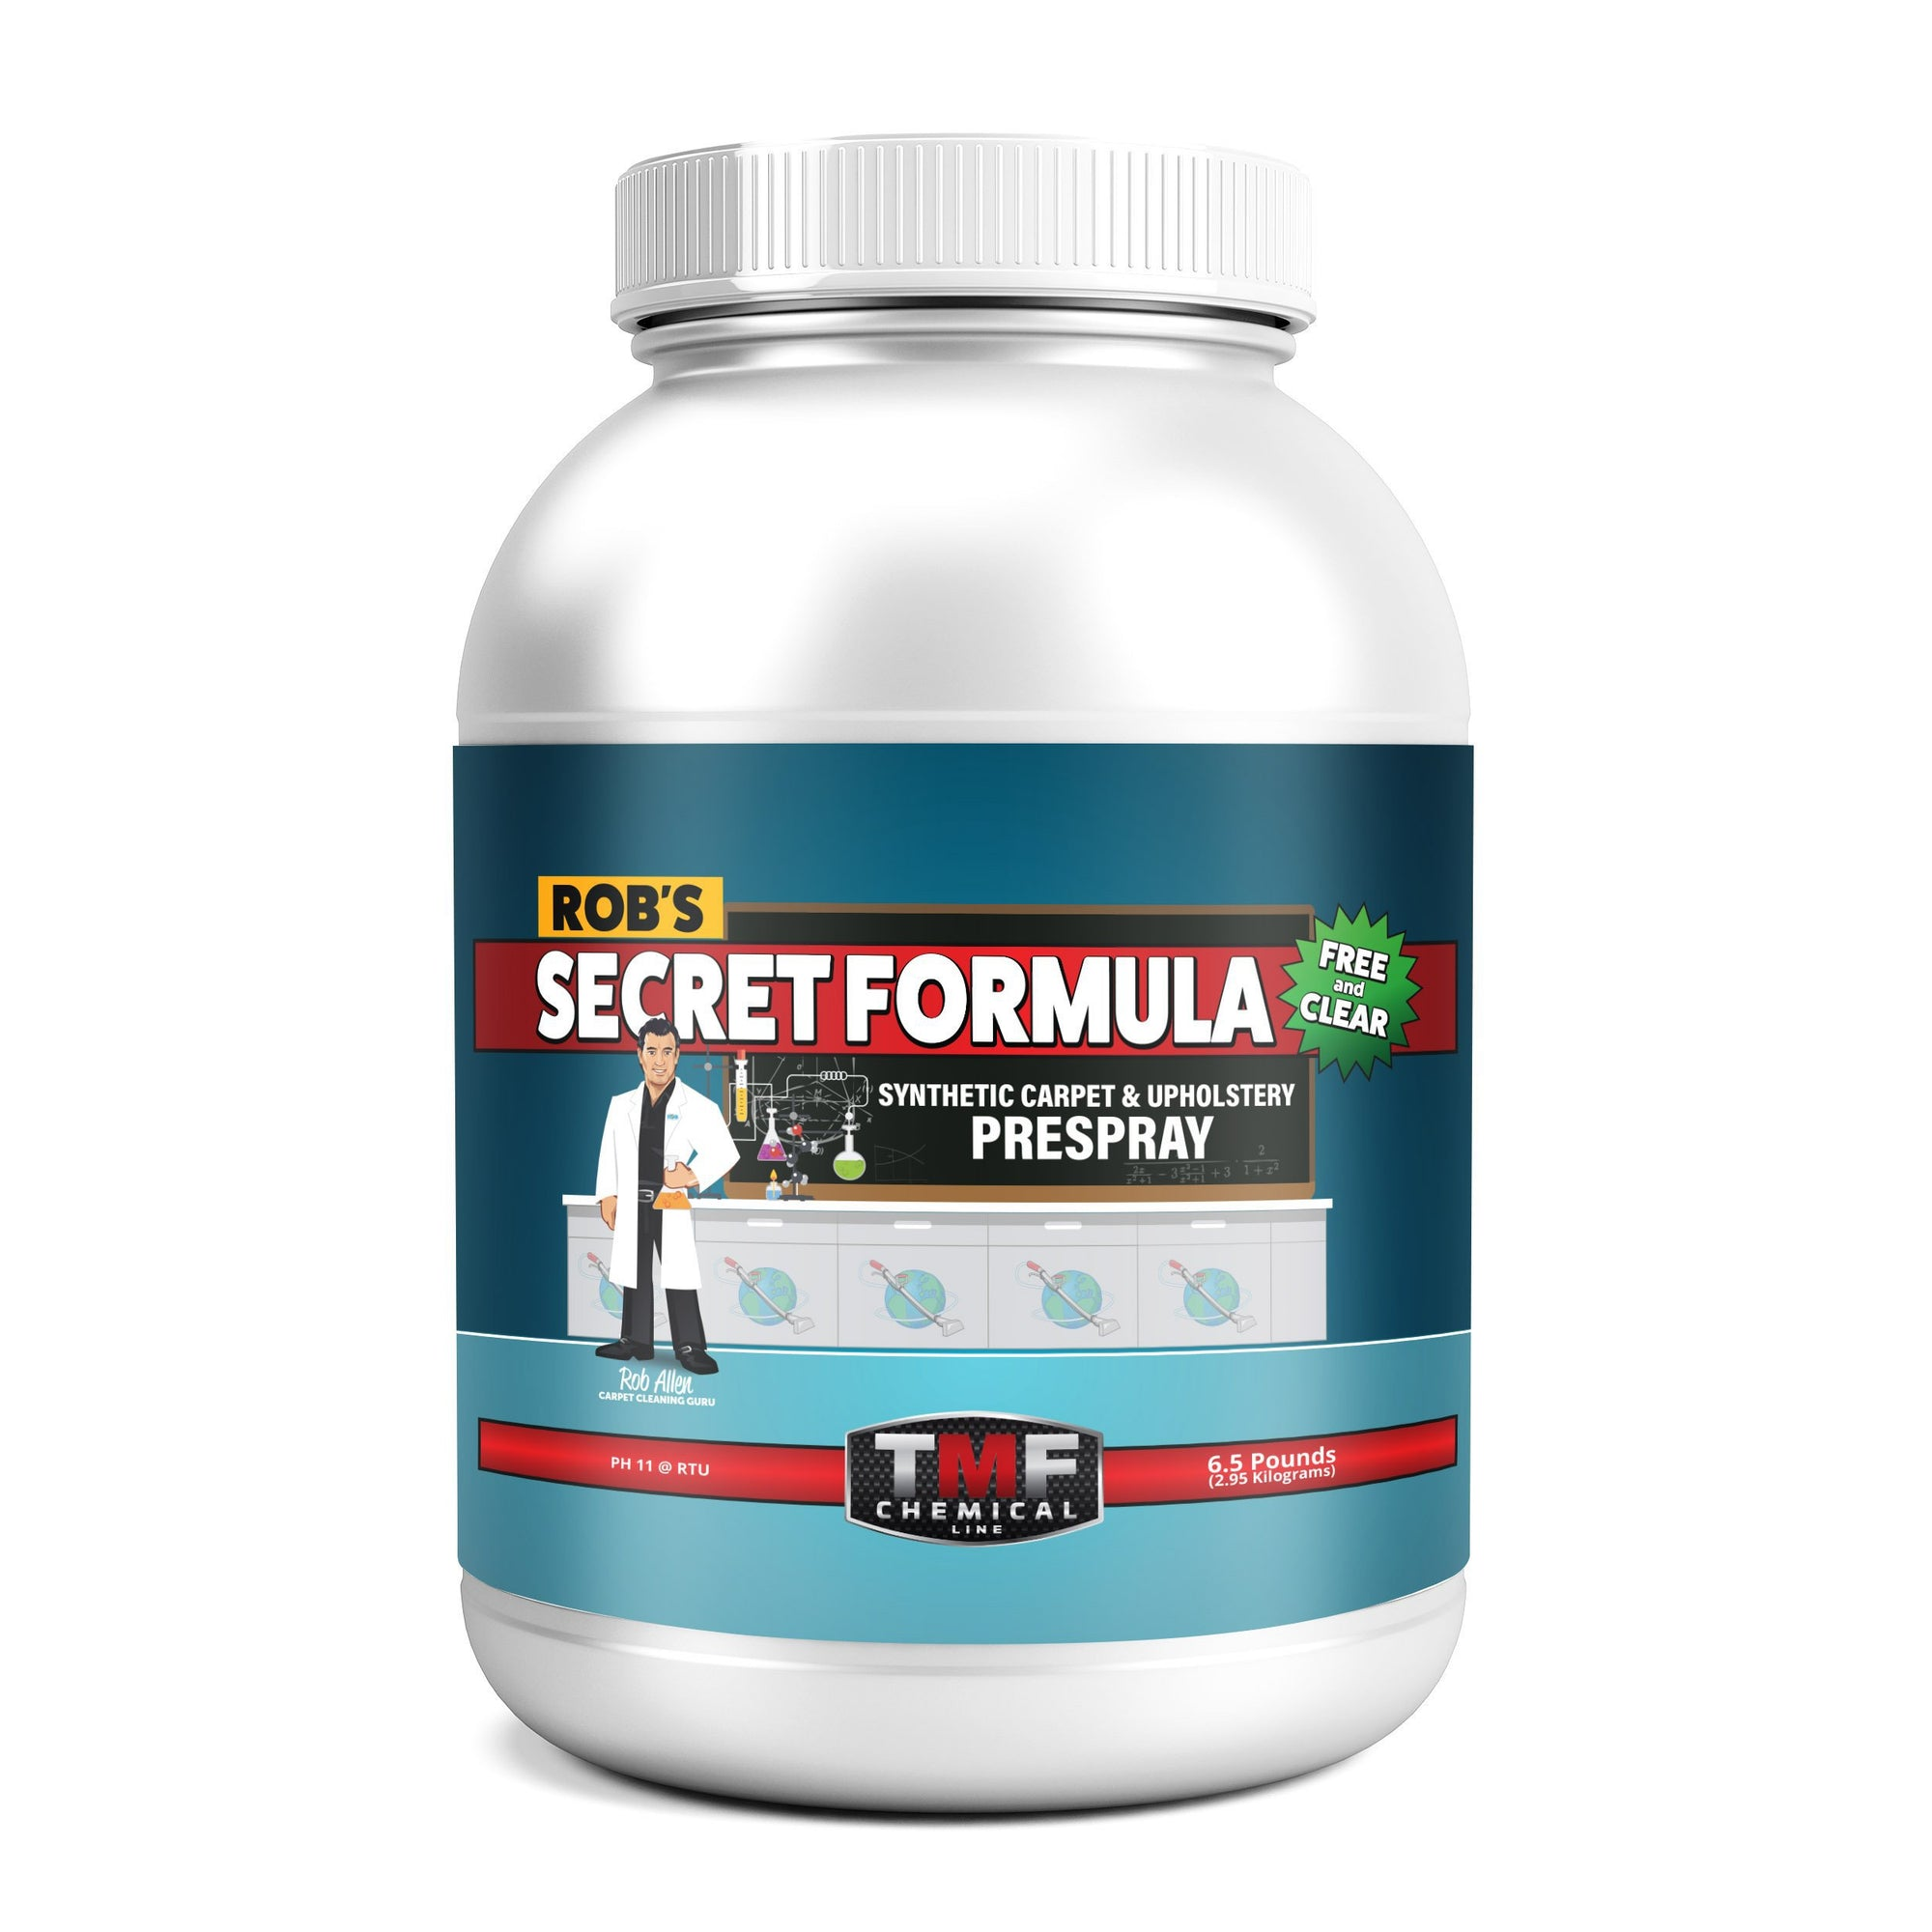 Robs Secret Formula Container (Free and Clear)